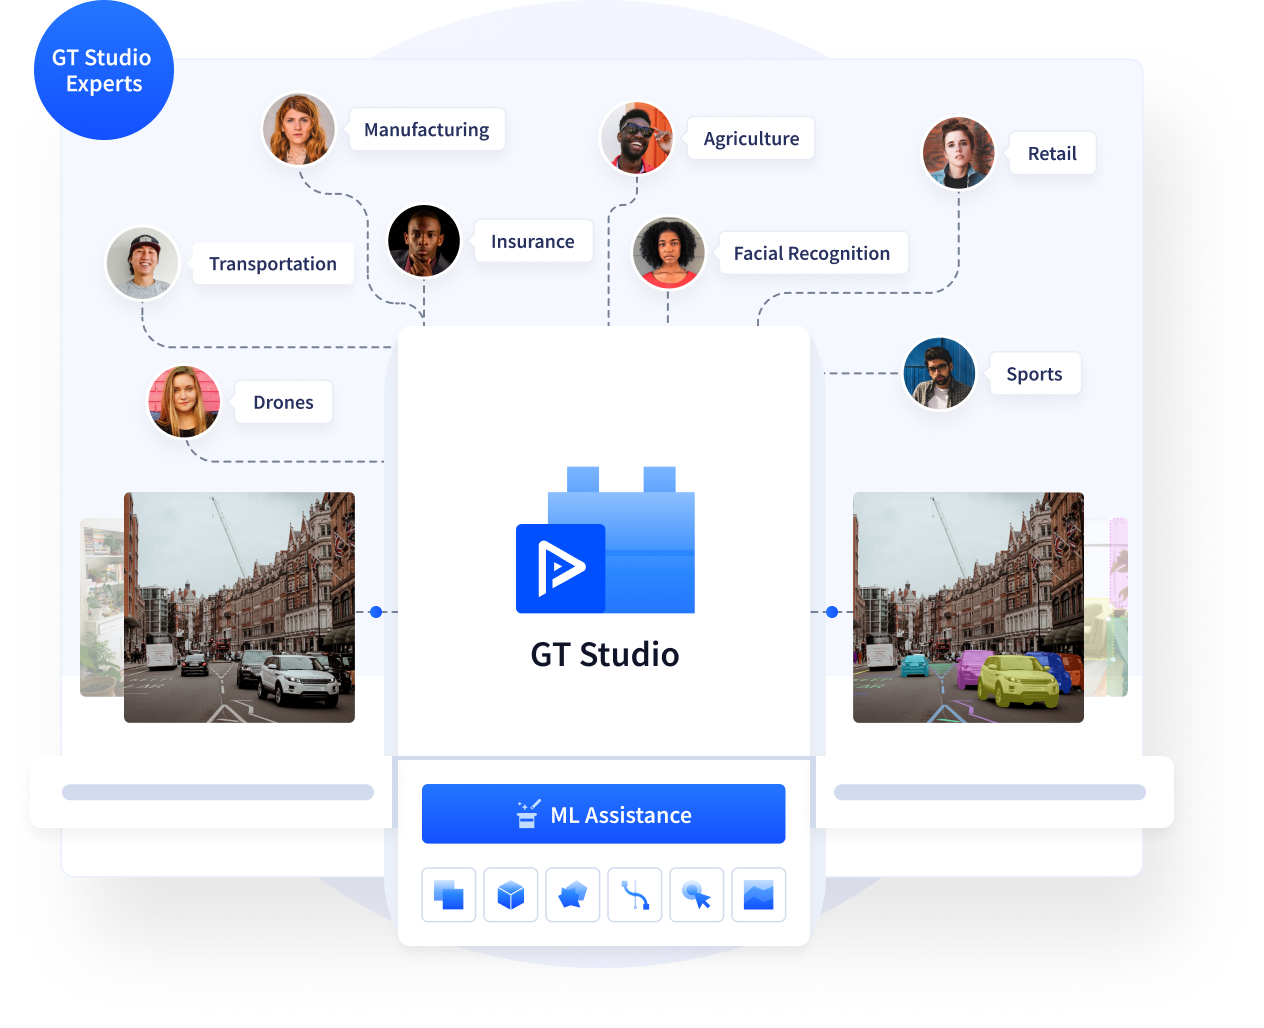 End-to-end project management for labeling projects with GT Studio experts